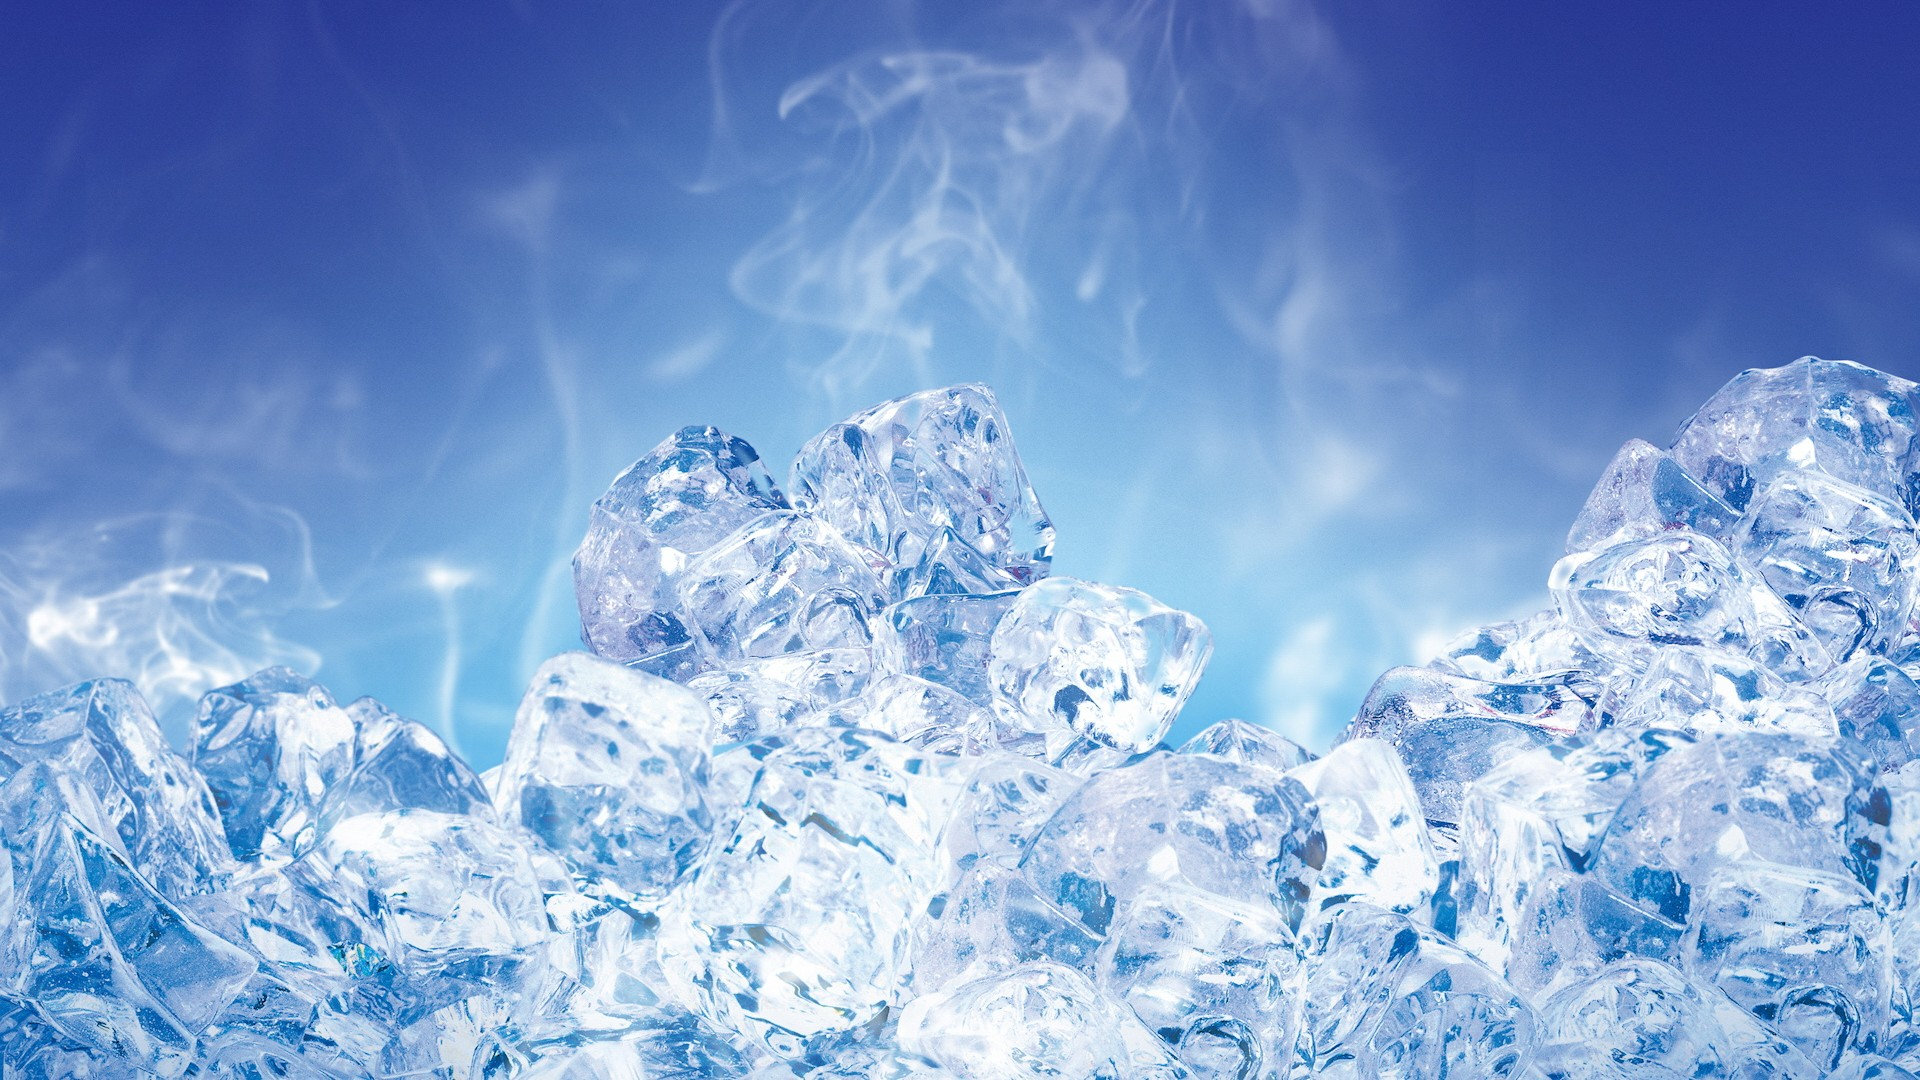 Ice Background HD Wallpapers | Backgrounds